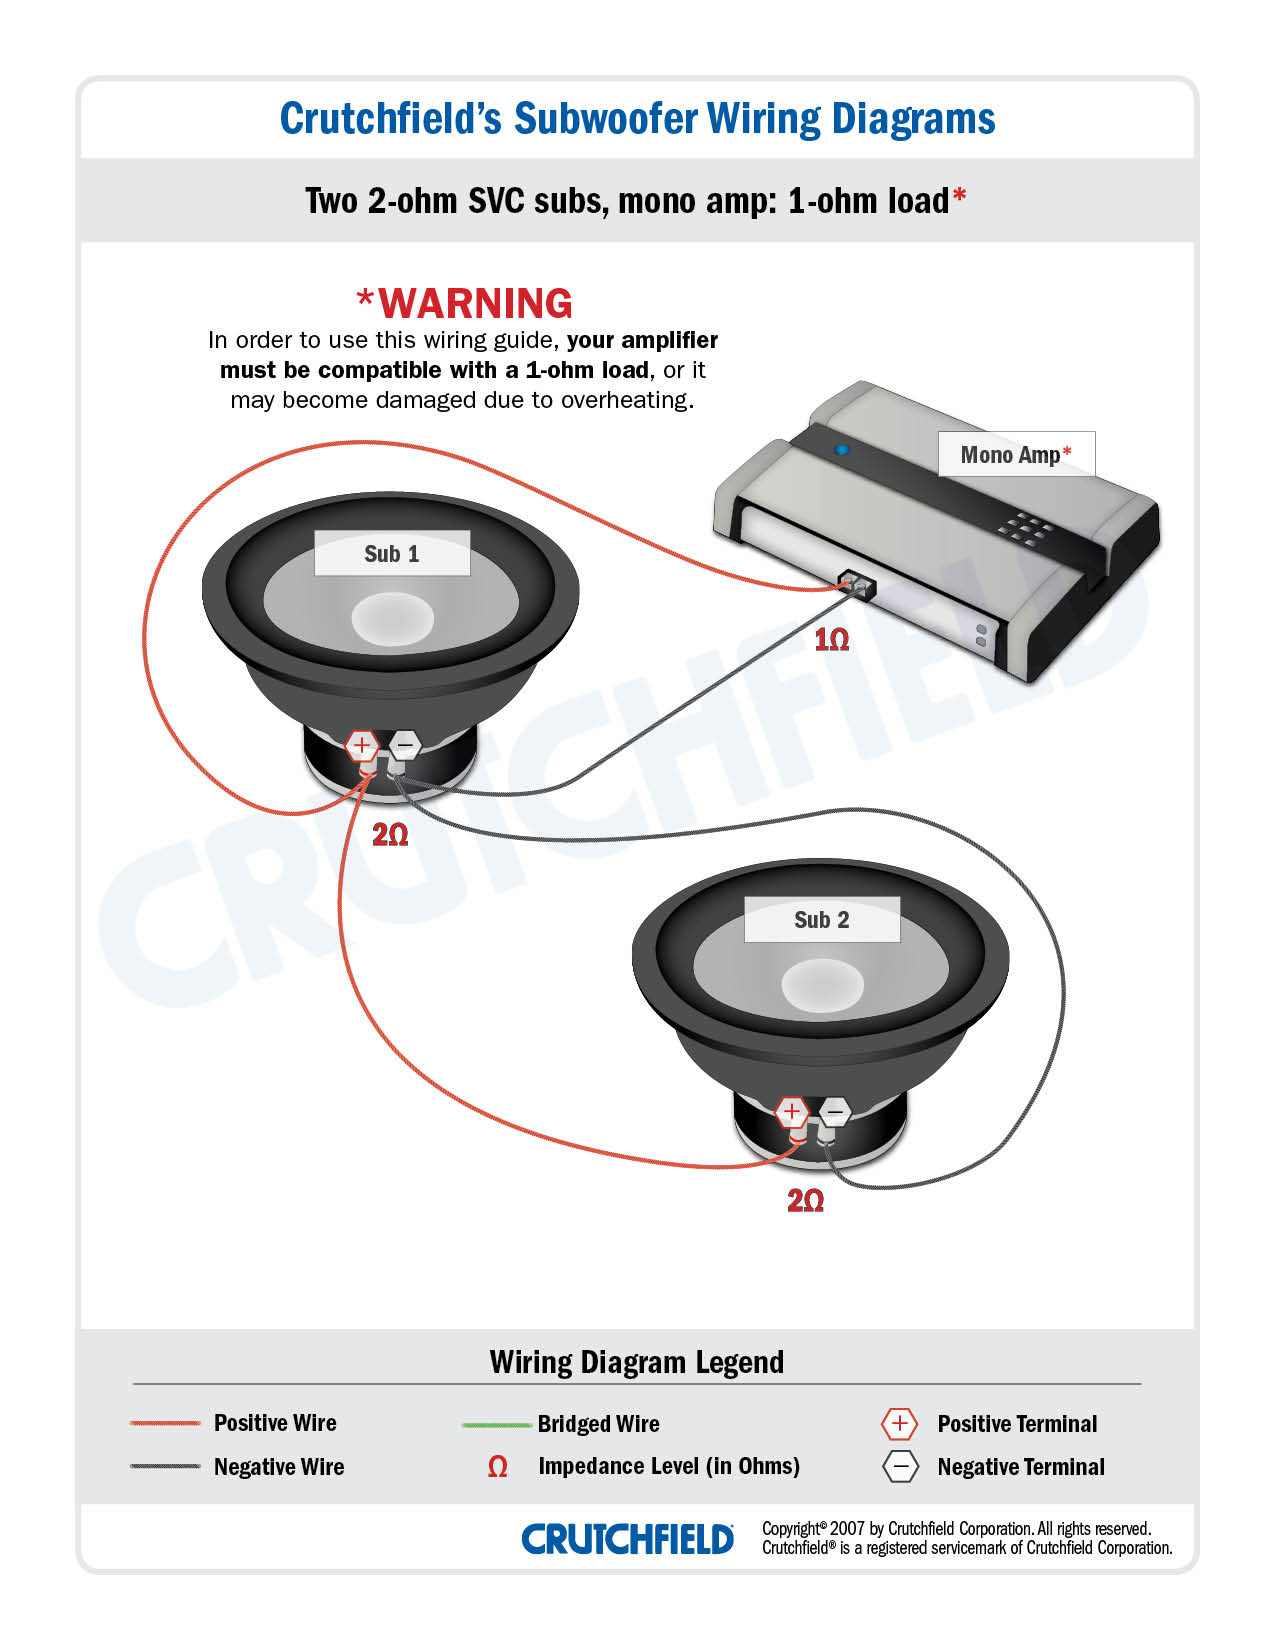 2 SVC 2 ohm mono low imp subwoofer wiring diagrams,Subwoofer Wiring Diagrams To 1 Ohm 2 Subs